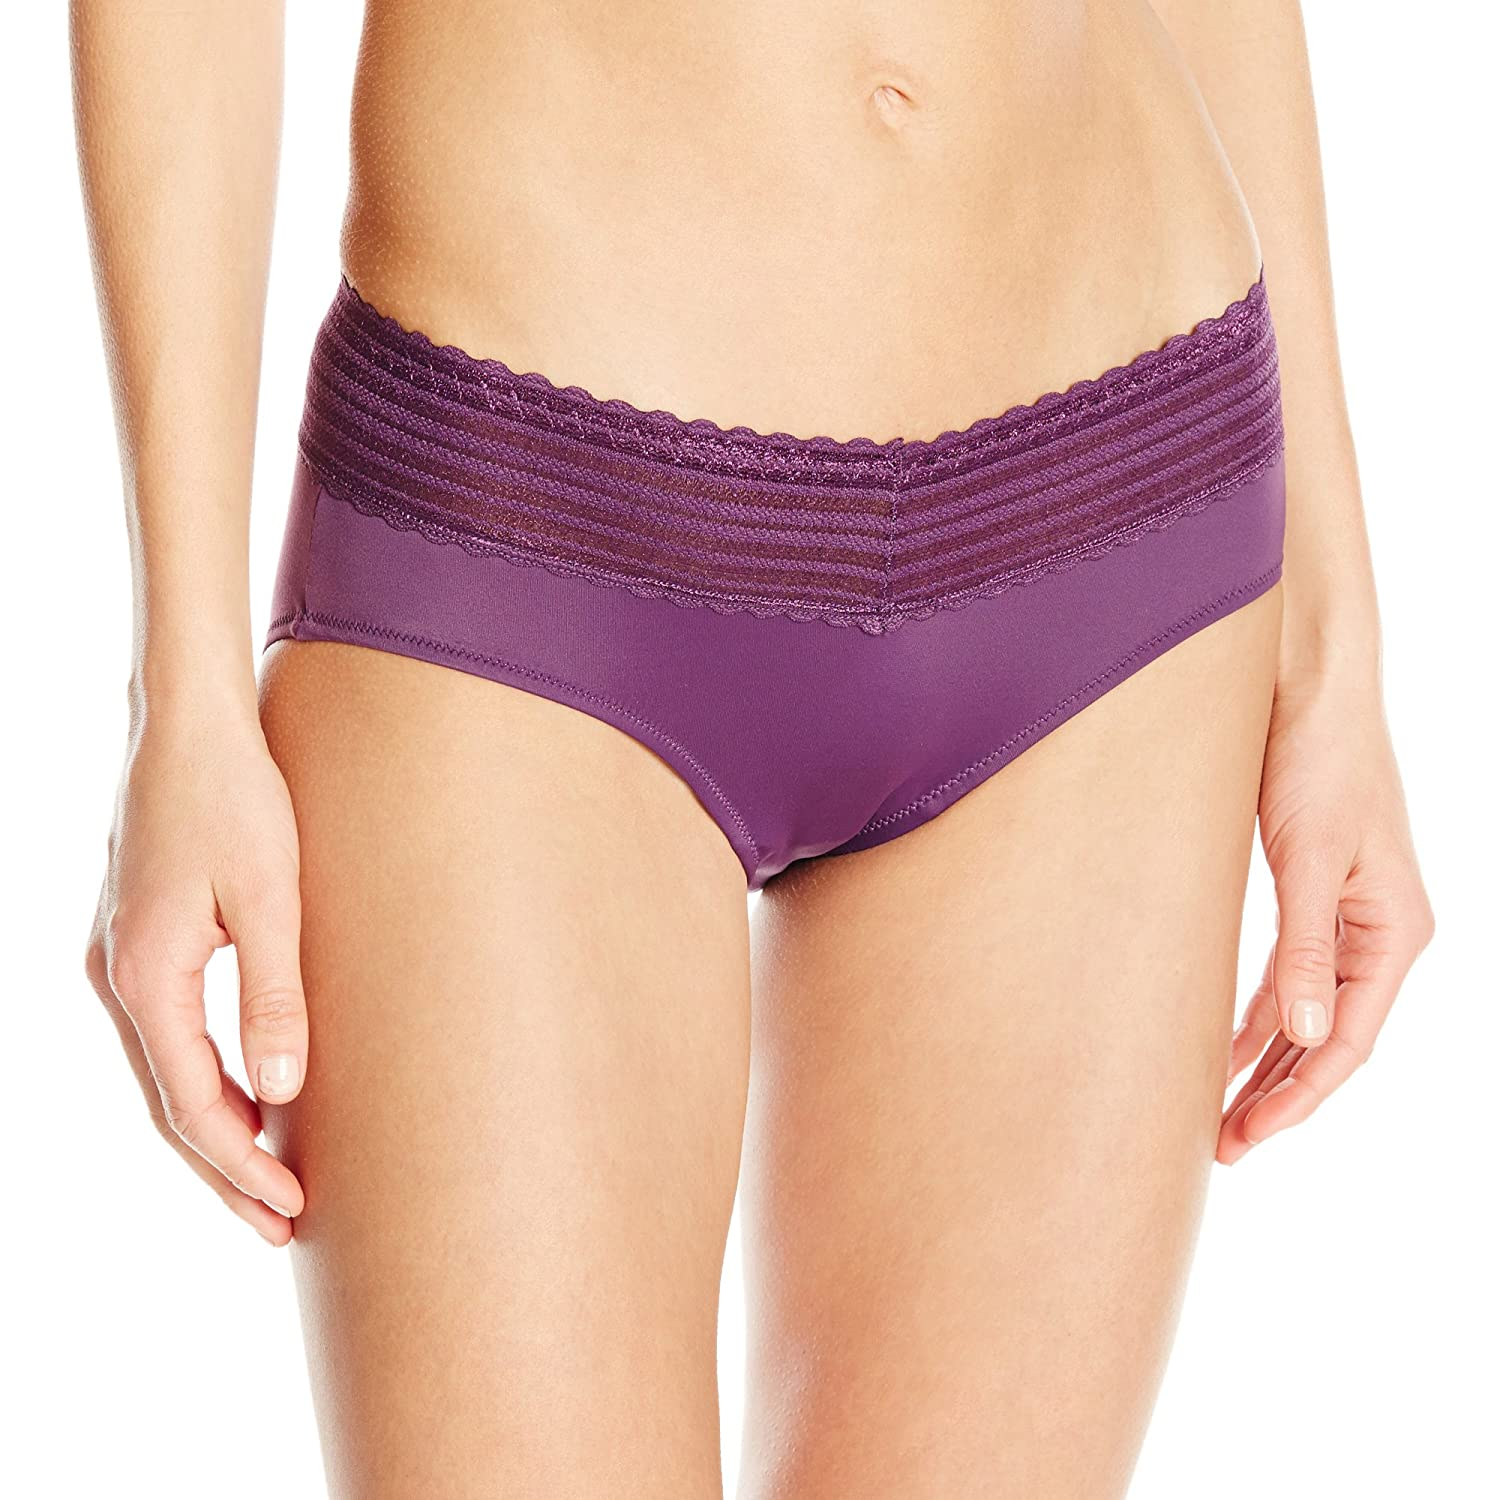 Warners Women's No Pinching No Problems Lace Hipster Panty Warner' s panty 5609J